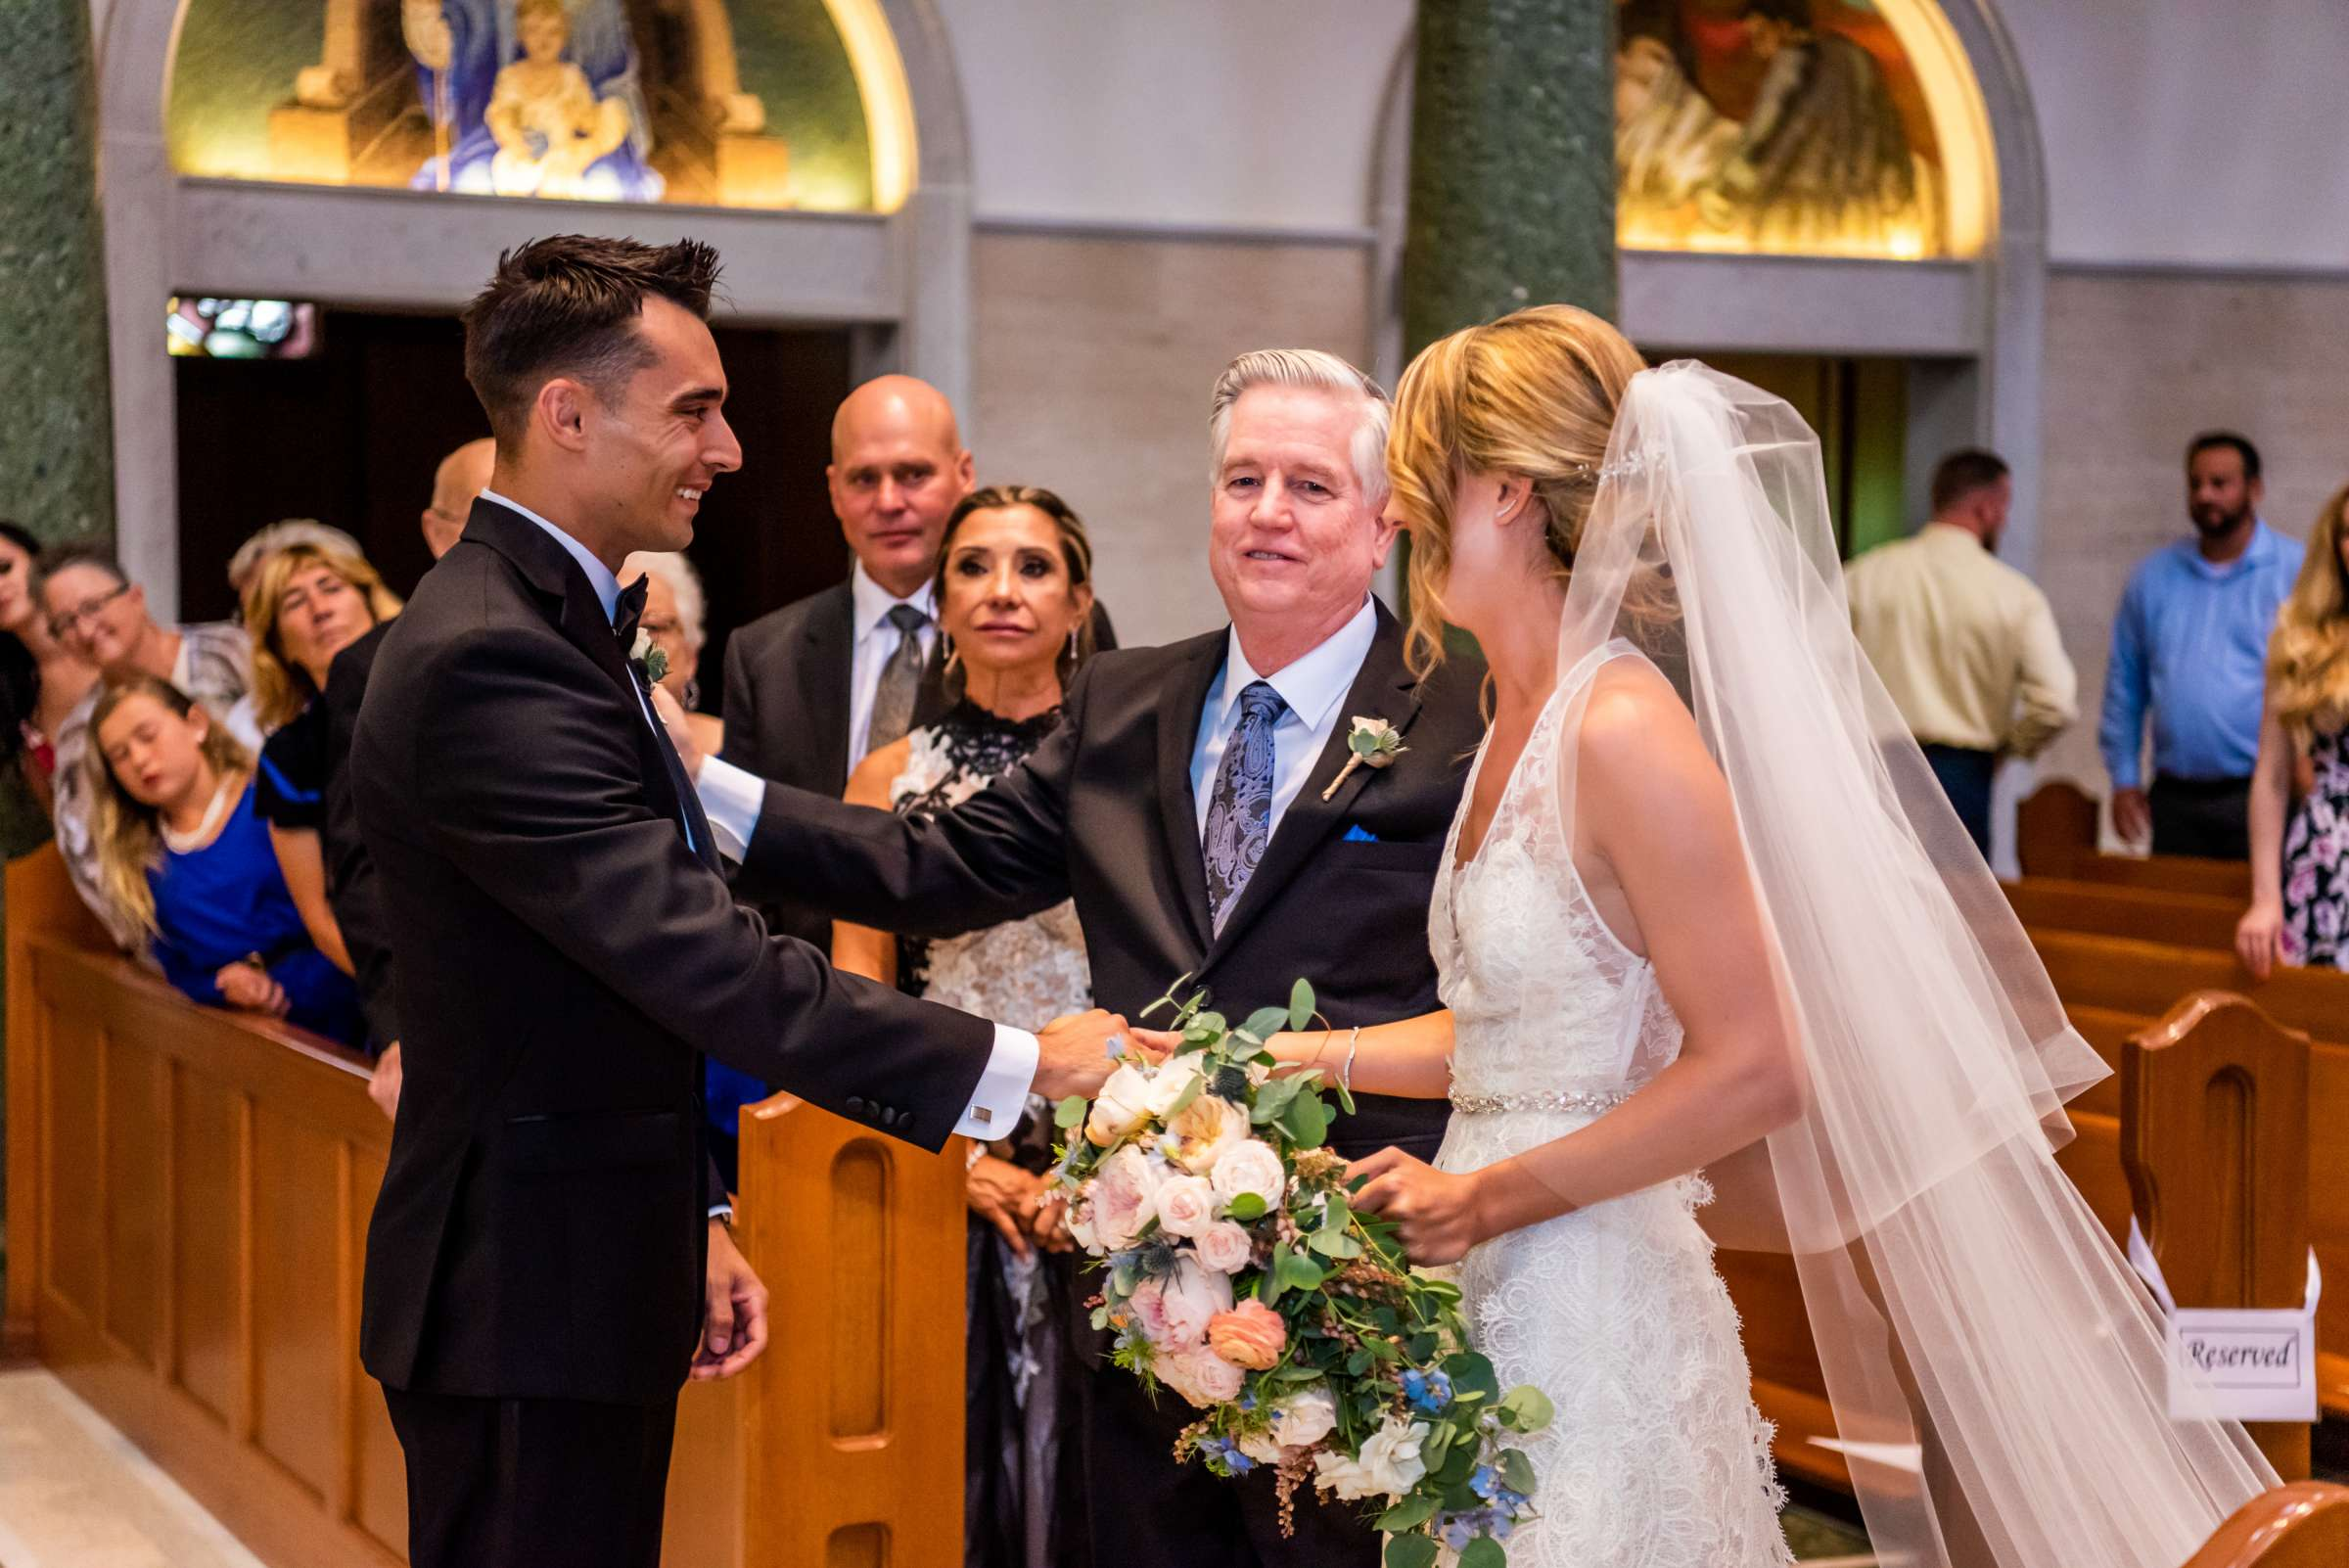 The Prado Wedding coordinated by Bliss Events, Sara and Marvin Wedding Photo #559537 by True Photography